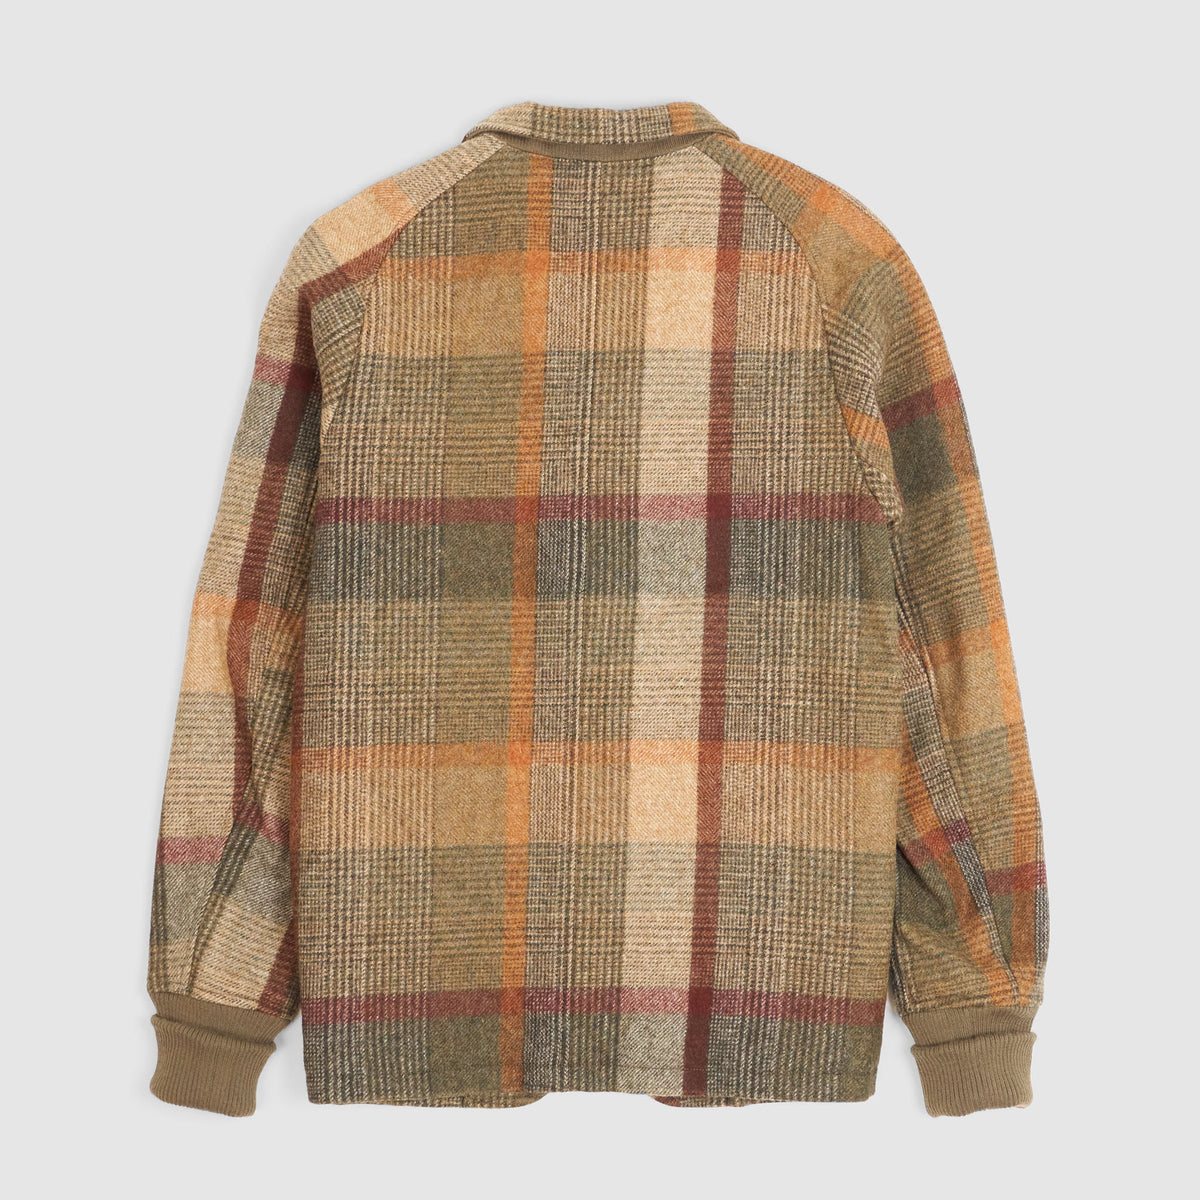 Ts(s) Lumberjack Plaid Jacket